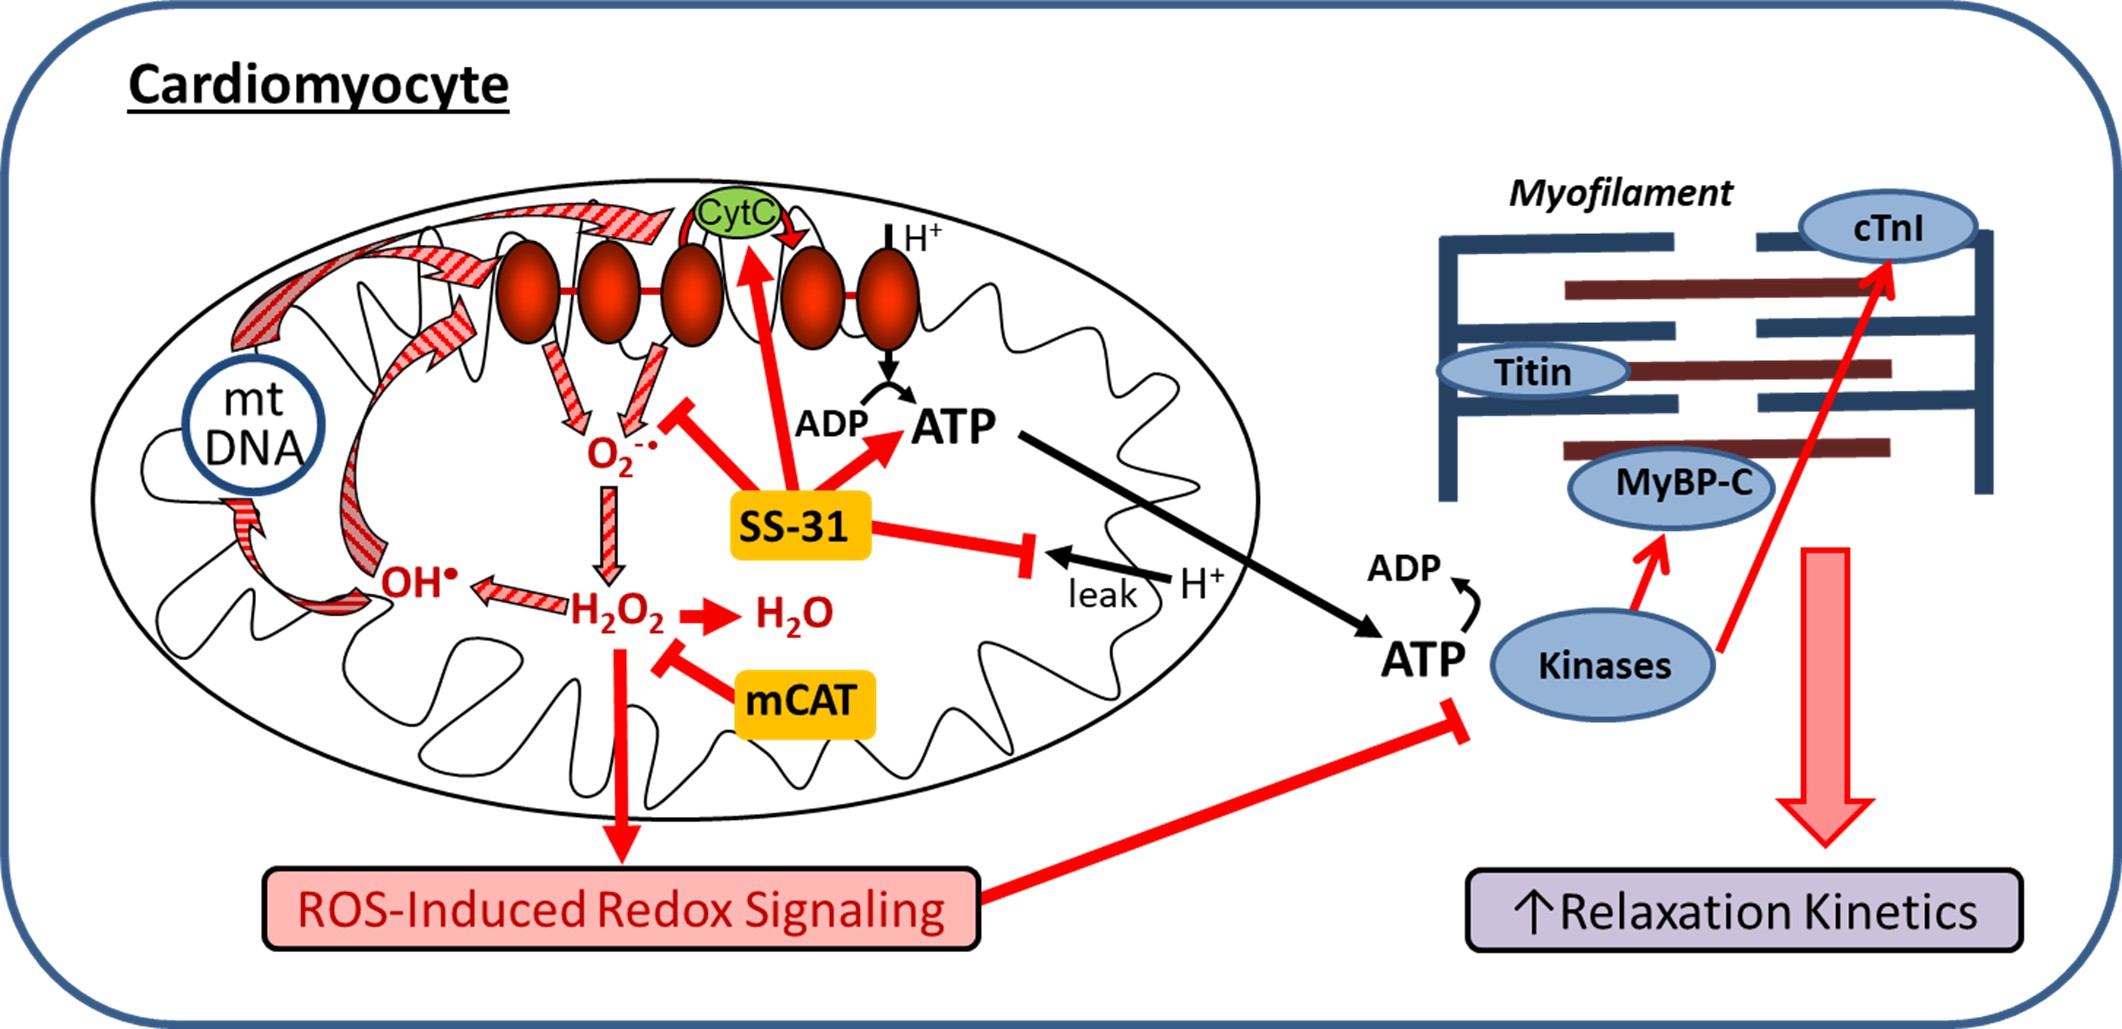 Late Life Restoration Of Mitochondrial Function Reverses Cardiac